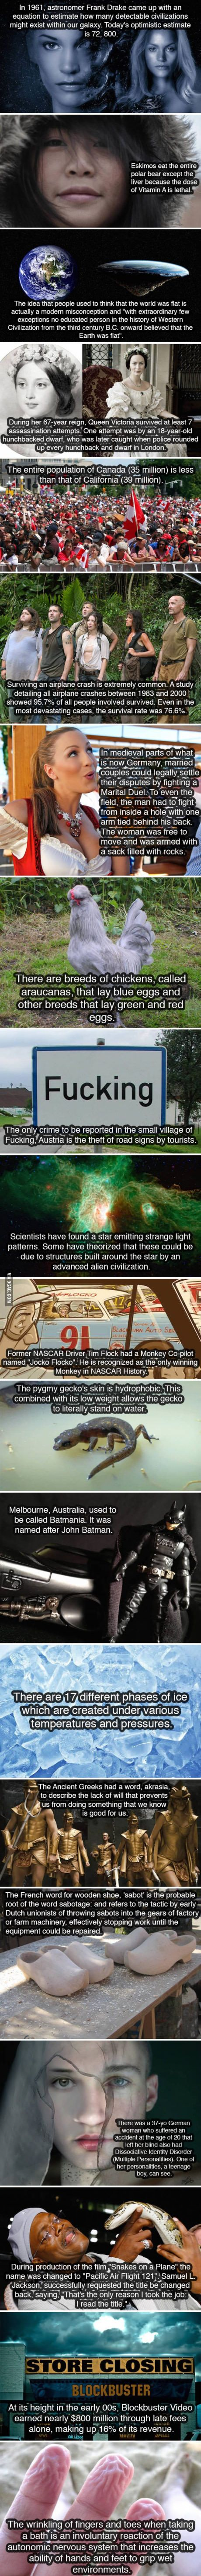 20 Interesting Facts To Refresh Your Brain